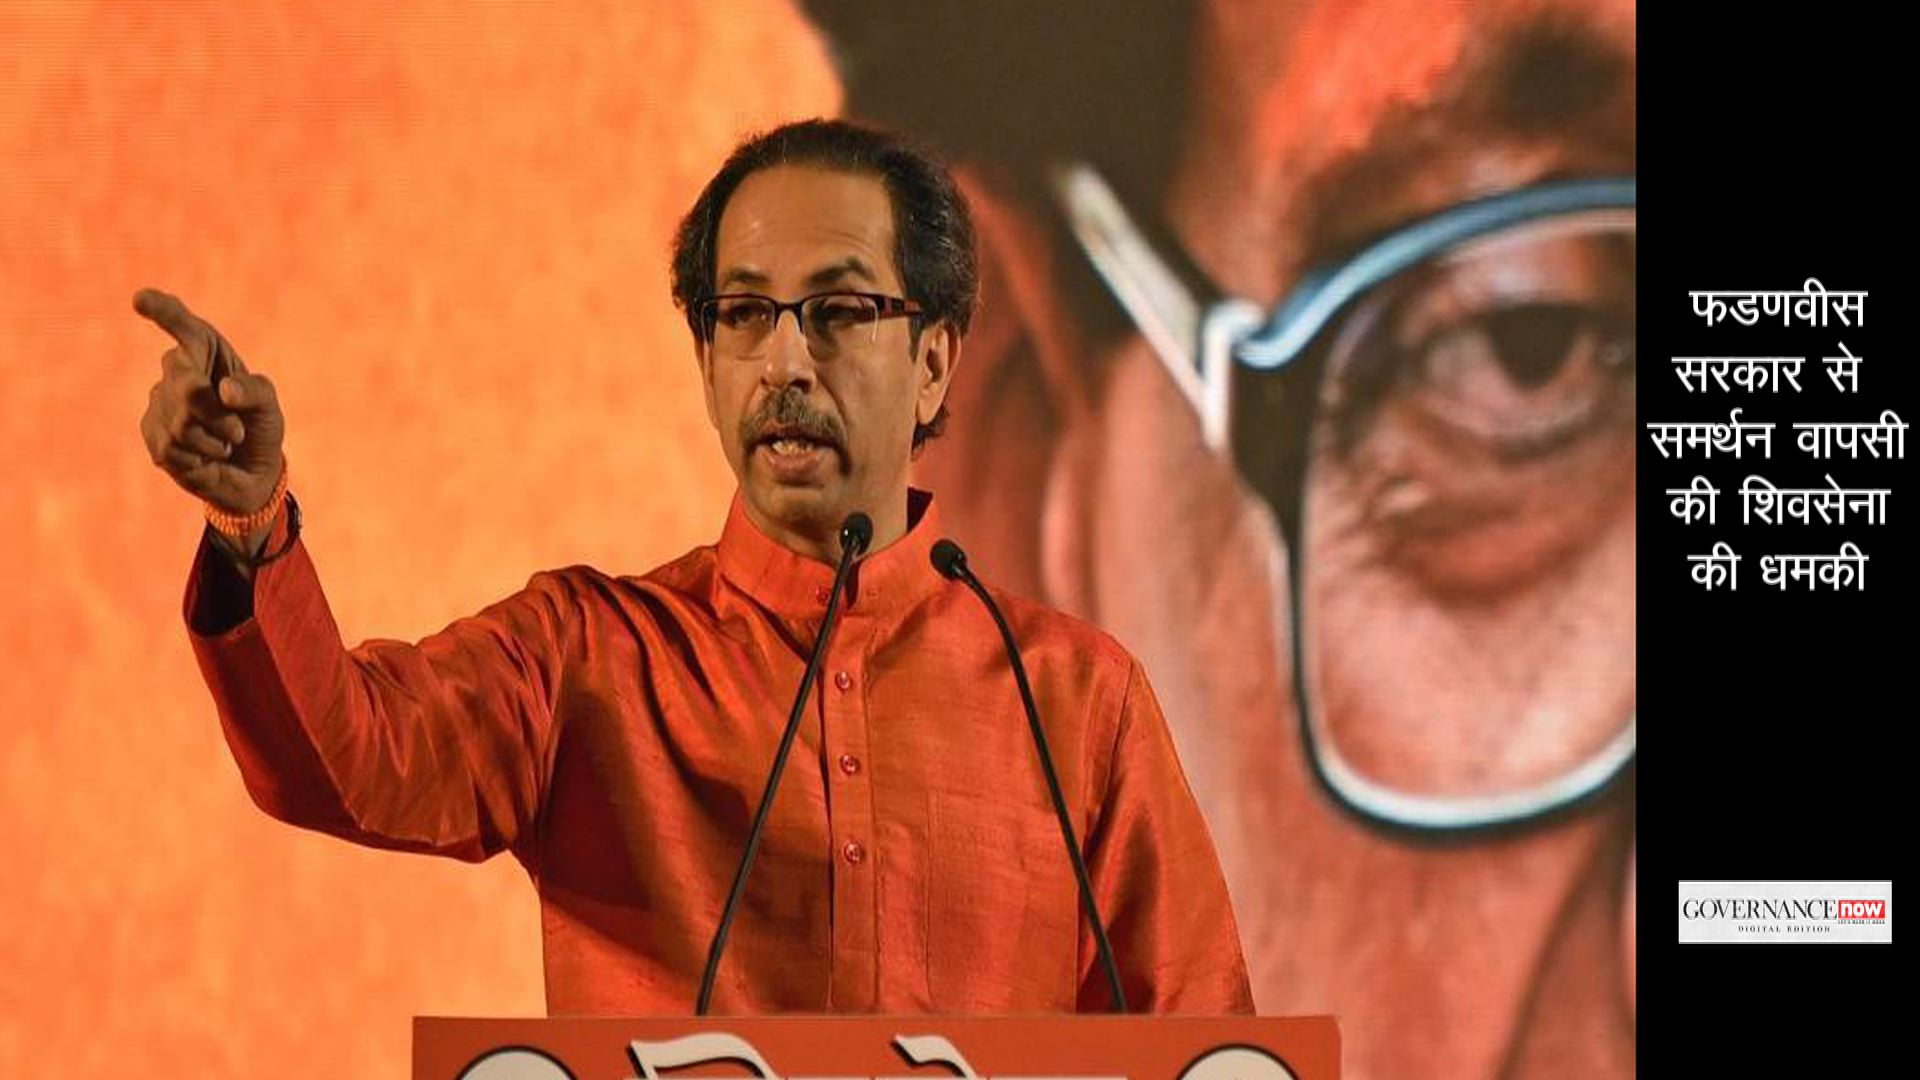 Shiv Sena threatens to withdraw support from Fadnavis govt.